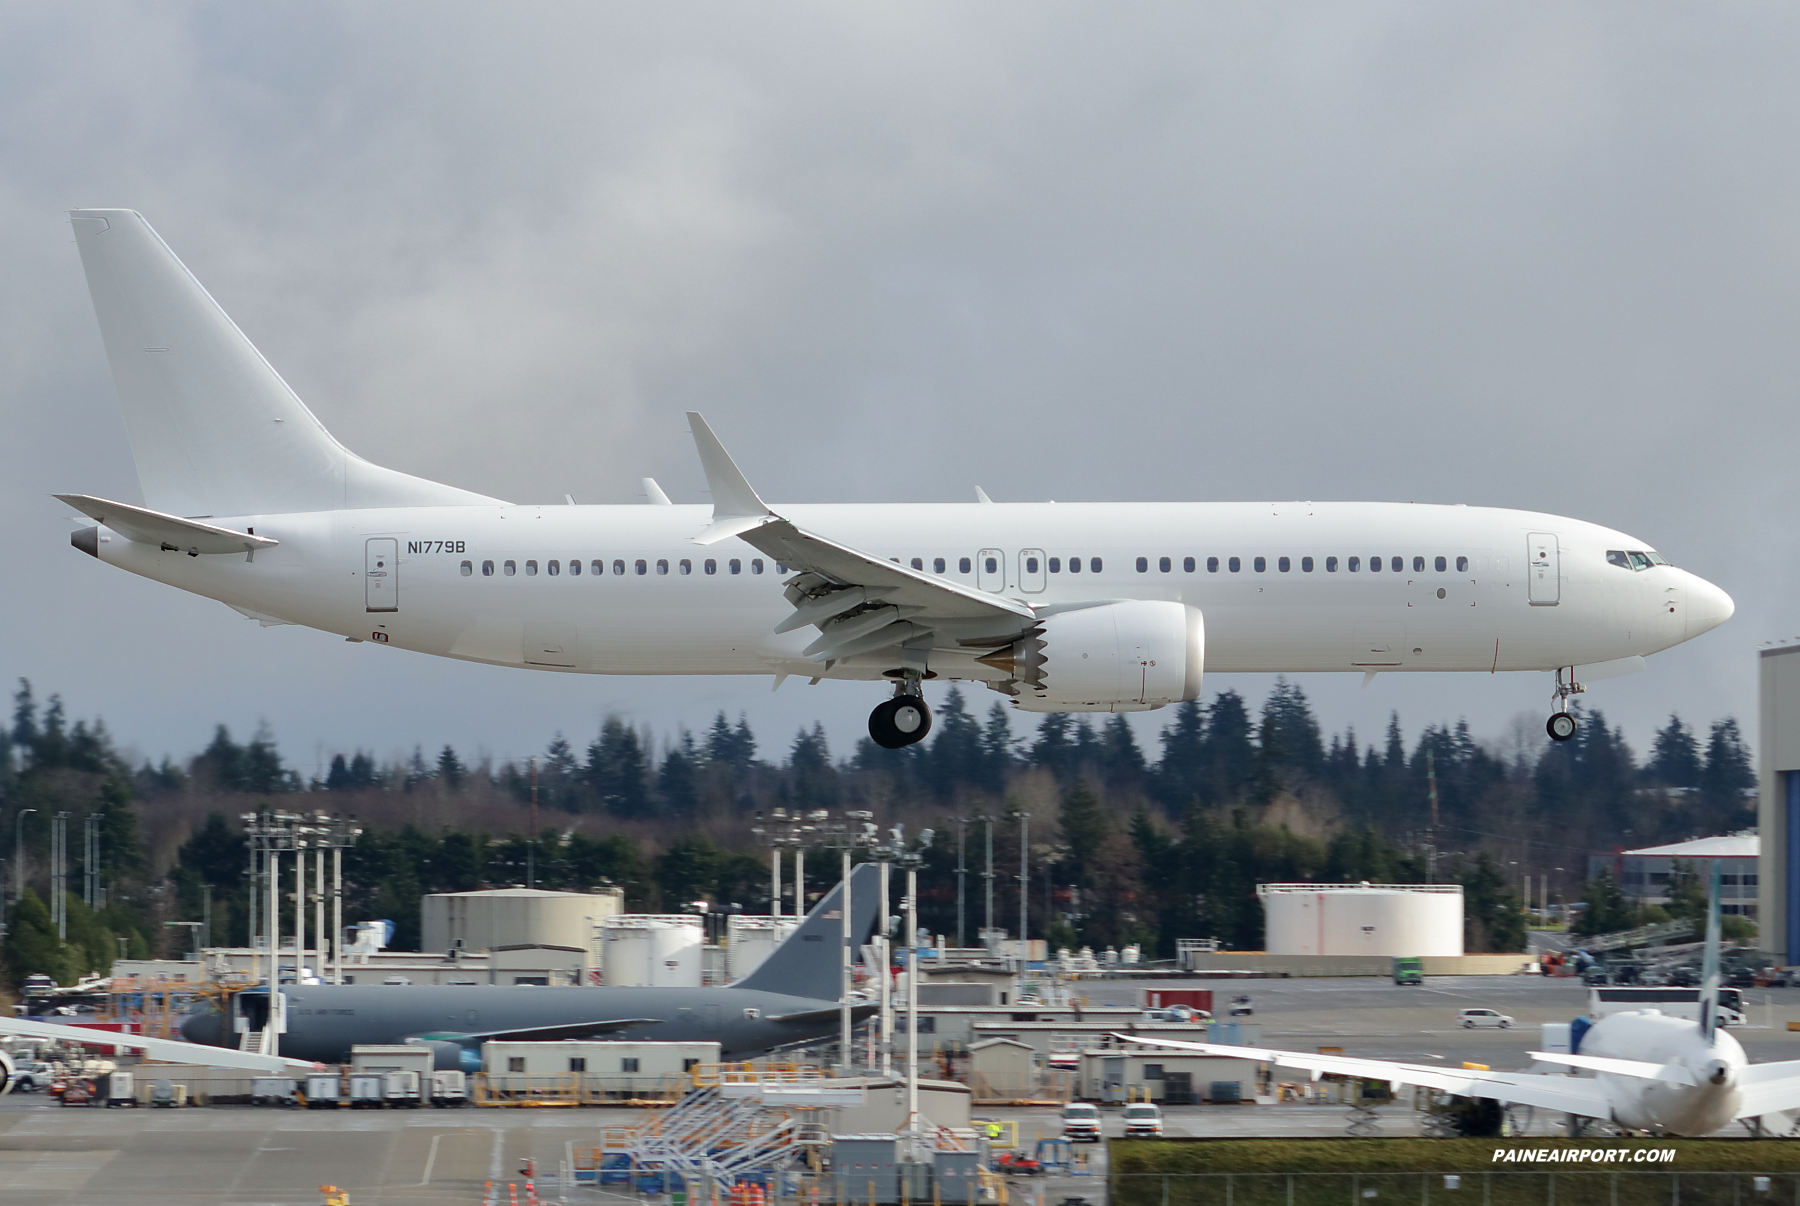 737 N1779B at Paine Field